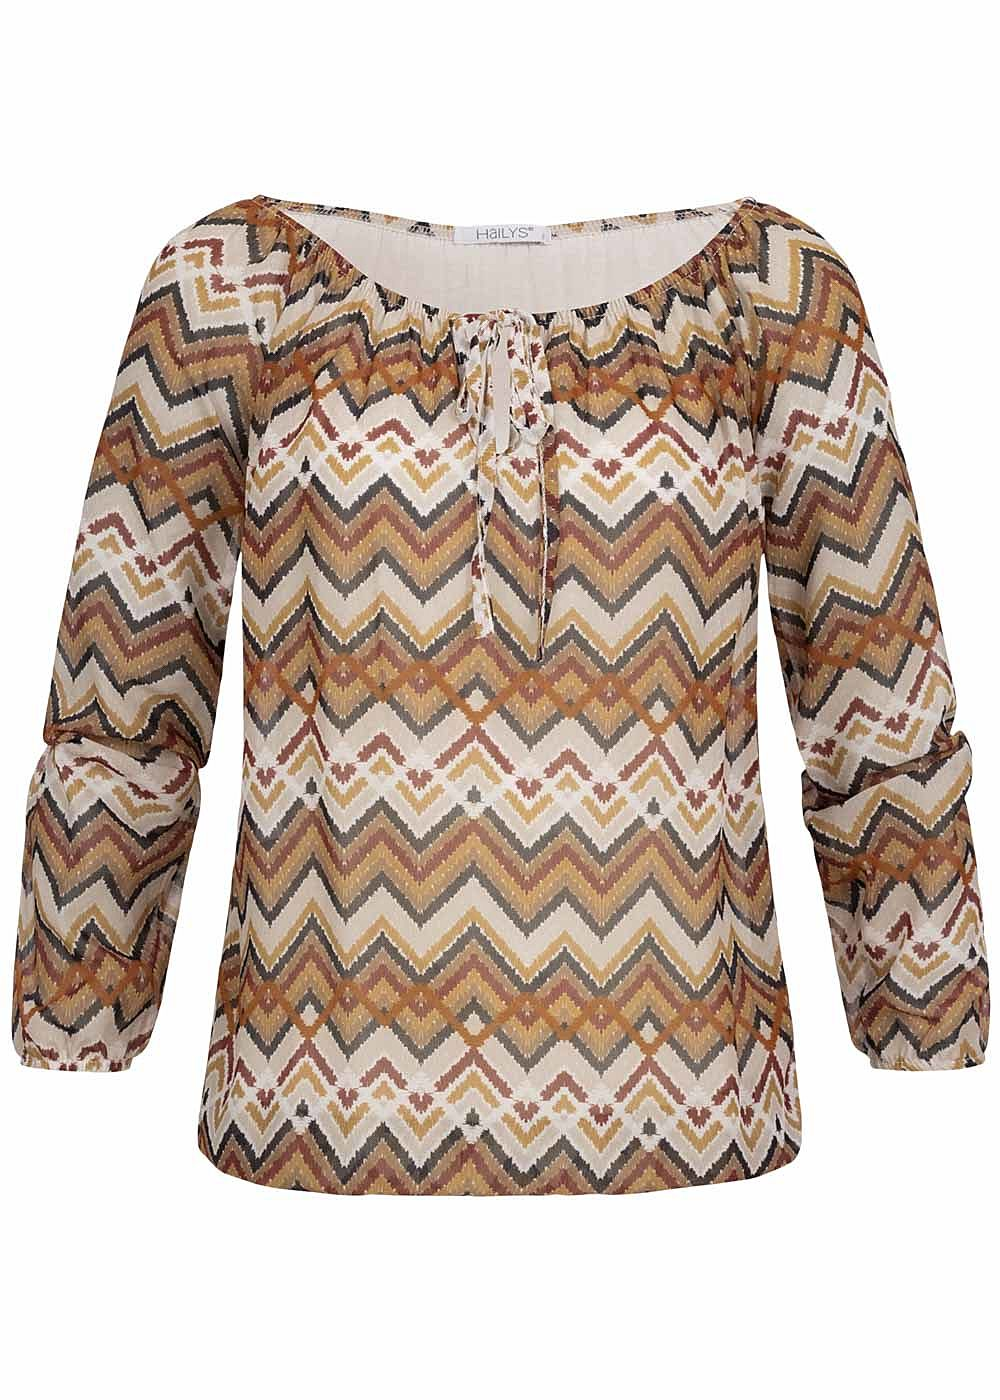 Hailys Damen Off-Shoulder Chiffon Blusen Top pumpkin orange beige - Art.-Nr.: 19093947